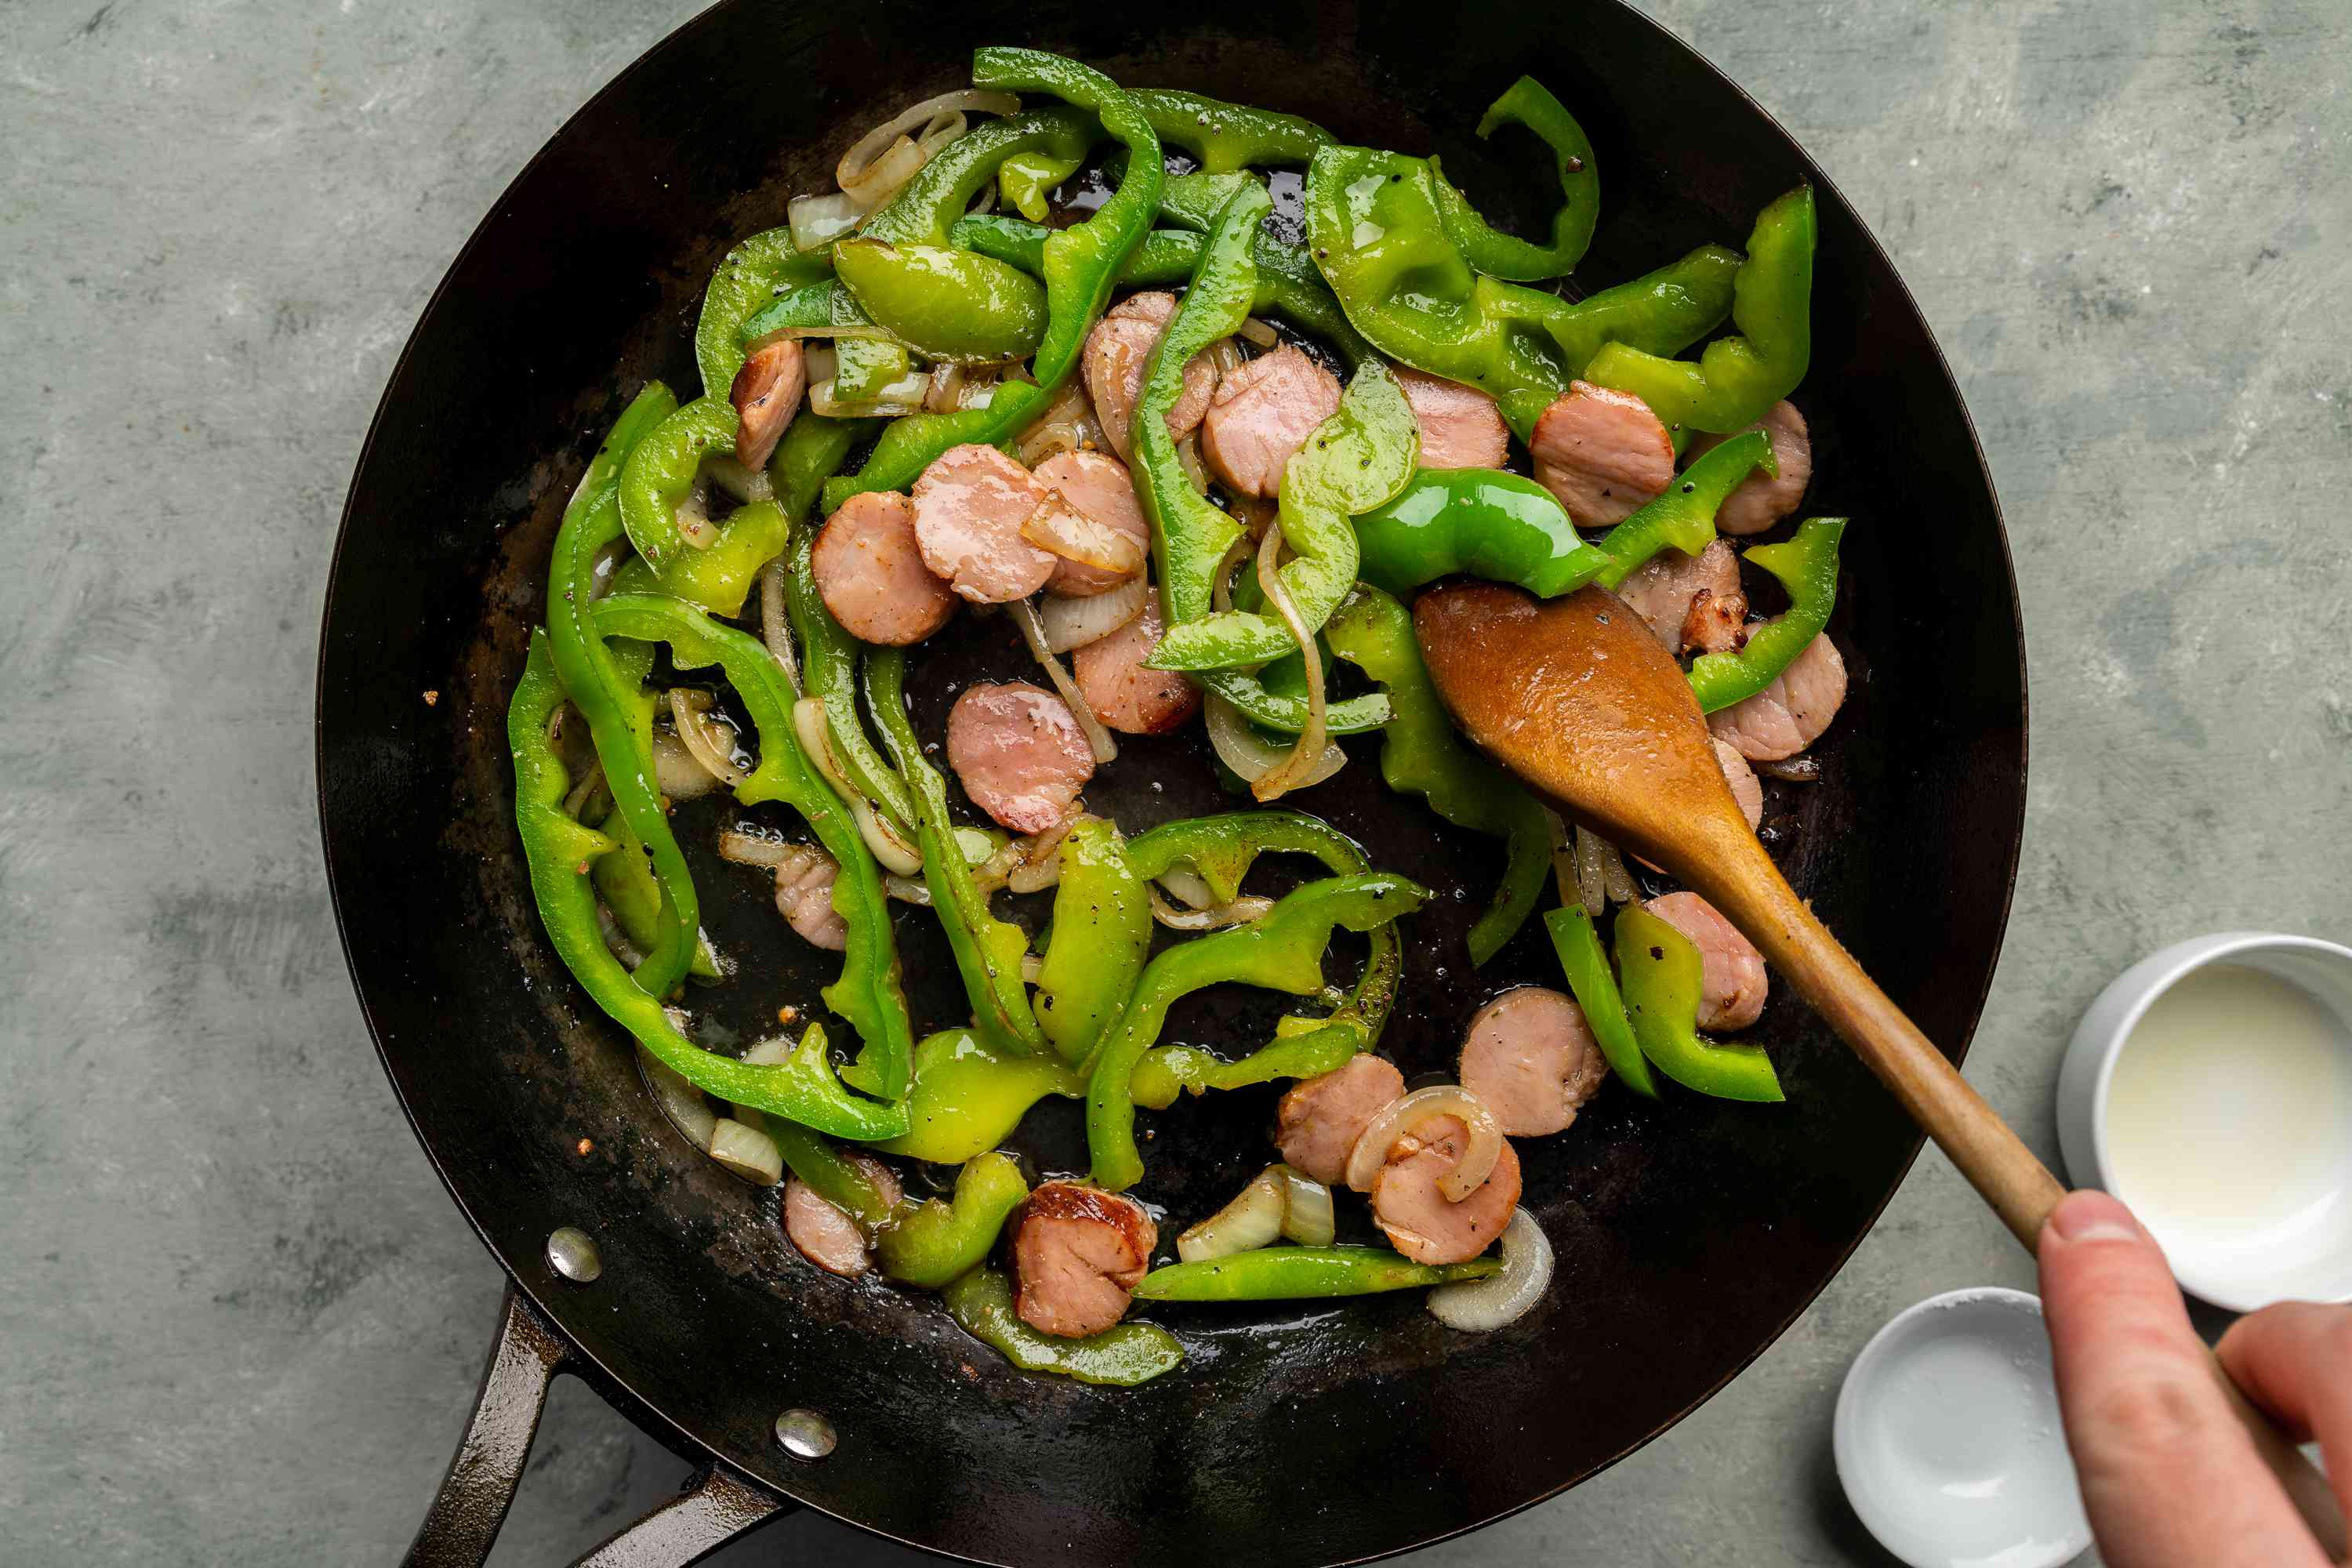 onion, bell pepper, and sausage cooking in a skillet